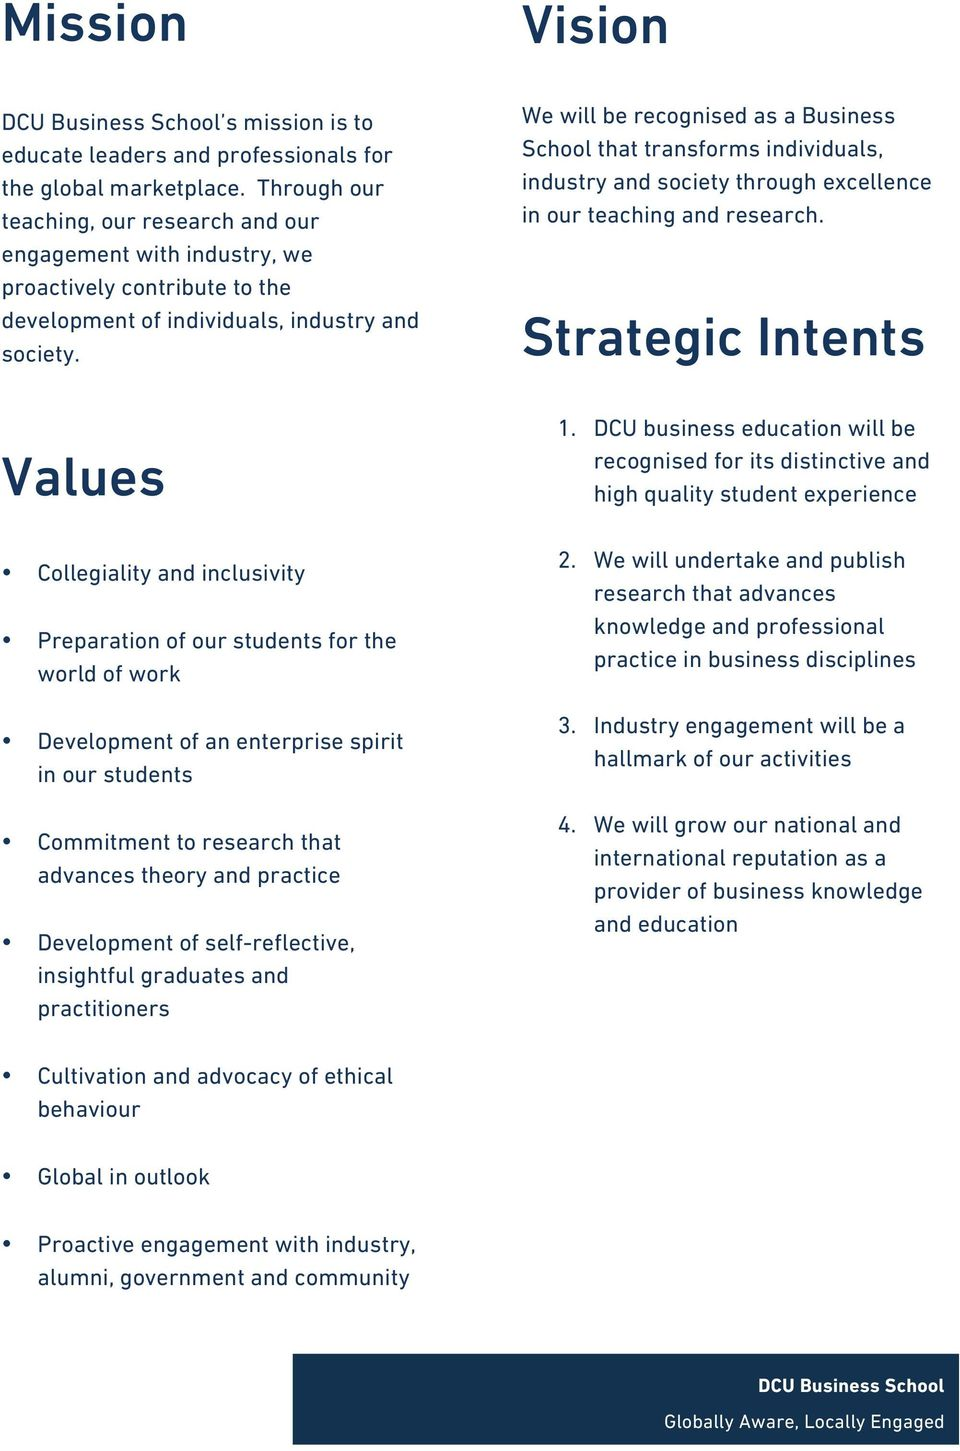 Values Collegiality and inclusivity Preparation of our students for the world of work Development of an enterprise spirit in our students Commitment to research that advances theory and practice